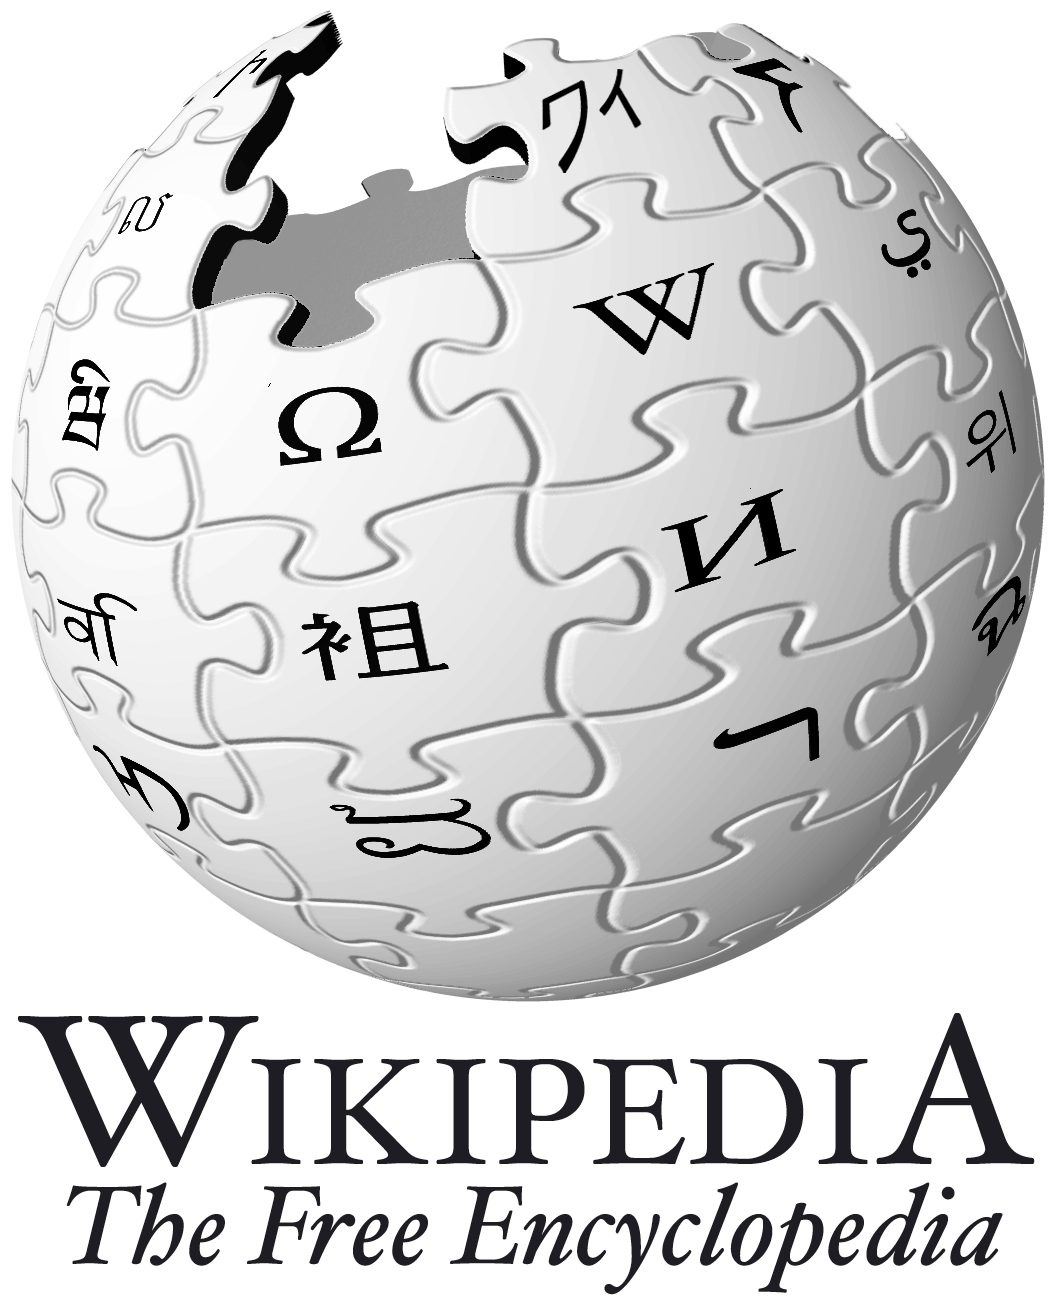 https://i0.wp.com/upload.wikimedia.org/wikipedia/commons/9/91/Nohat-logo-XI-big-text.png